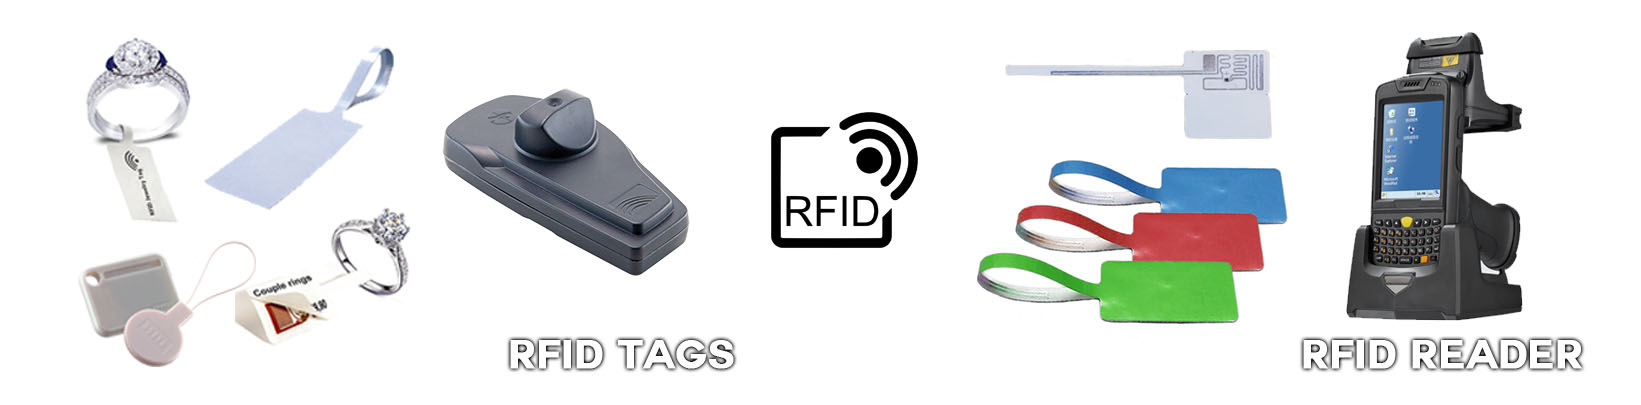 rfid-tags-for-jewellery-retail.jpg